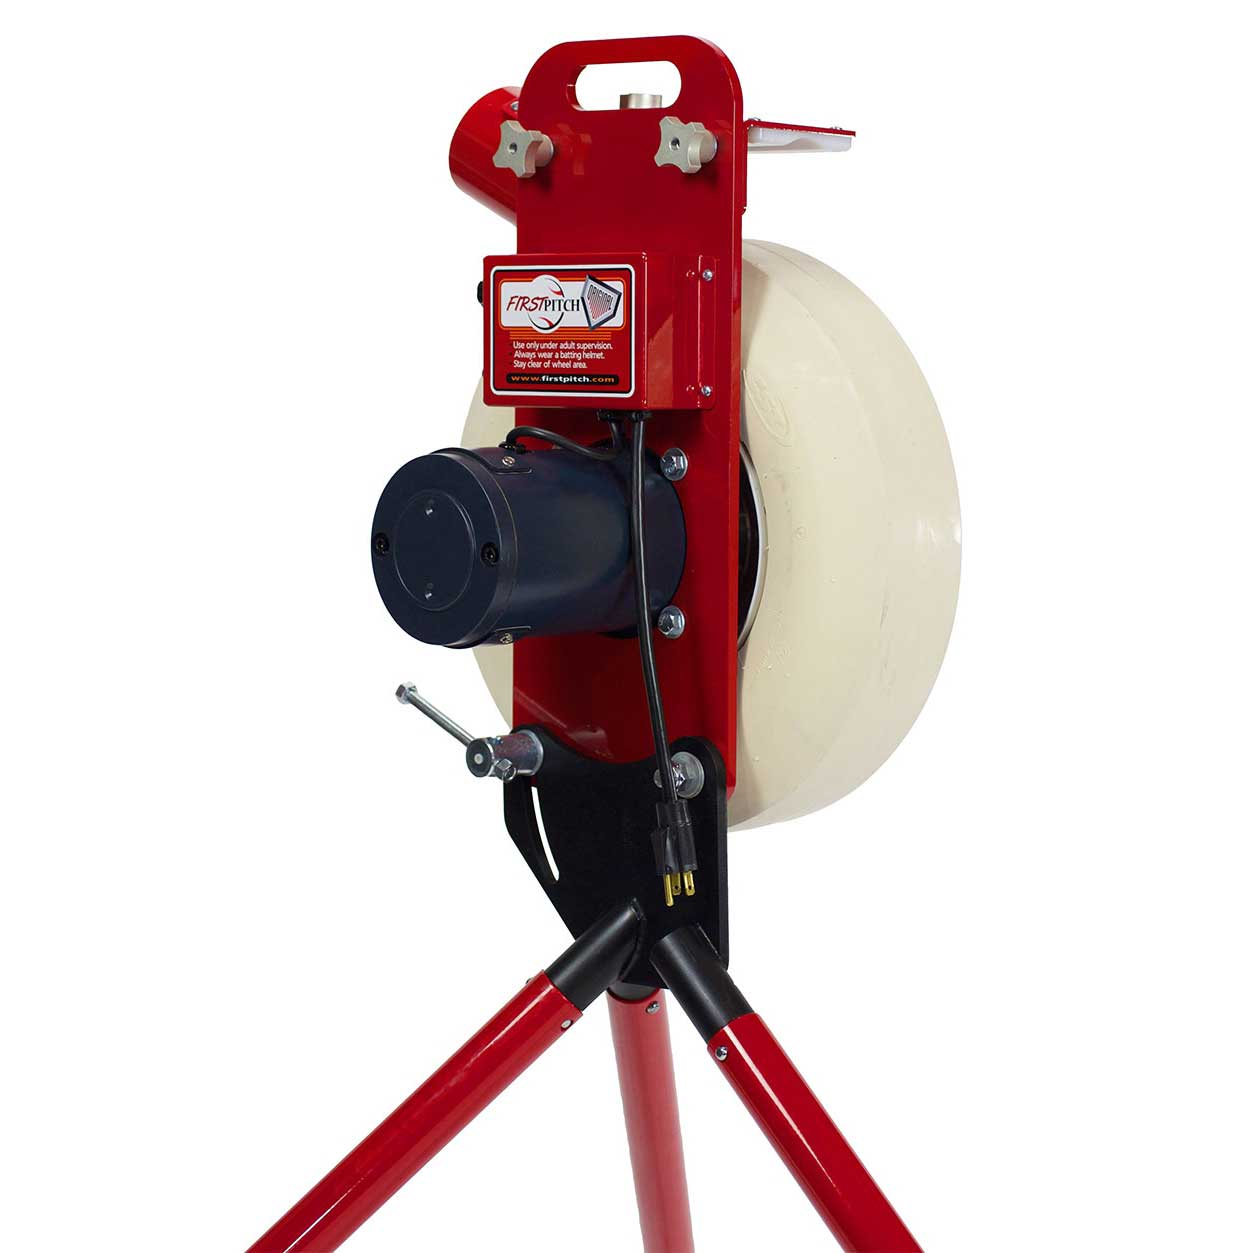 Packaging or Promotional image for First Pitch Original Softball Pitching Machine